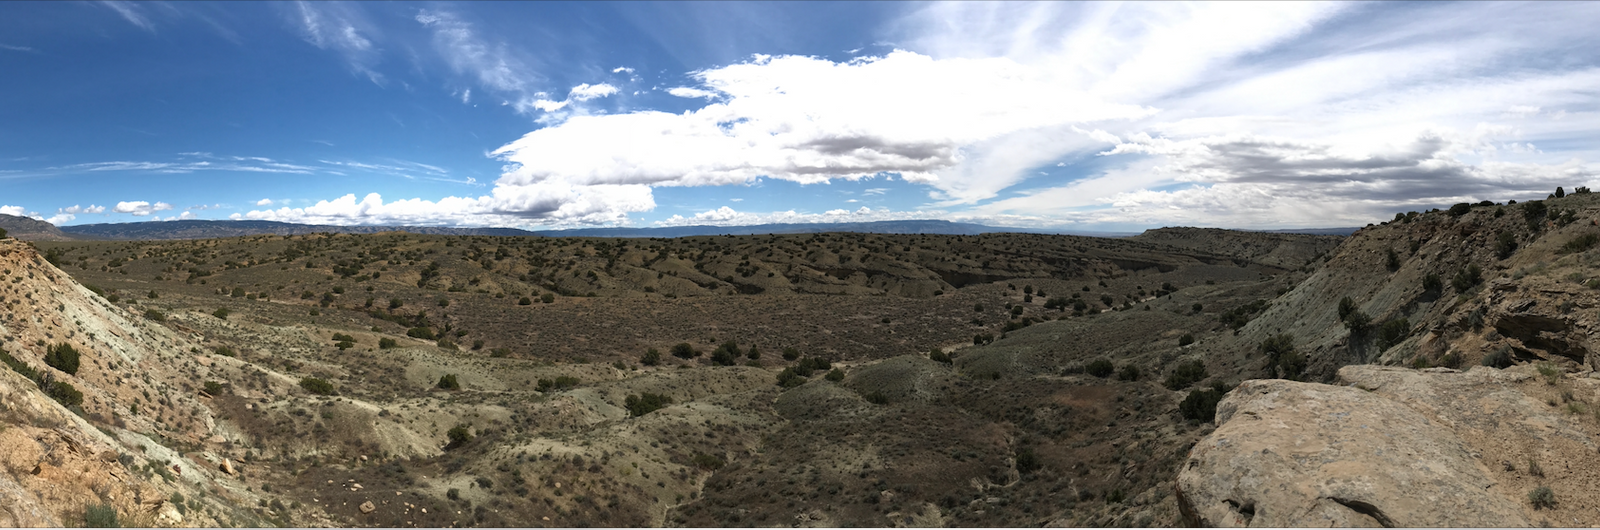 The view from the Wyoming dig site. This region was, during the Jurassic Period, a fertile ...